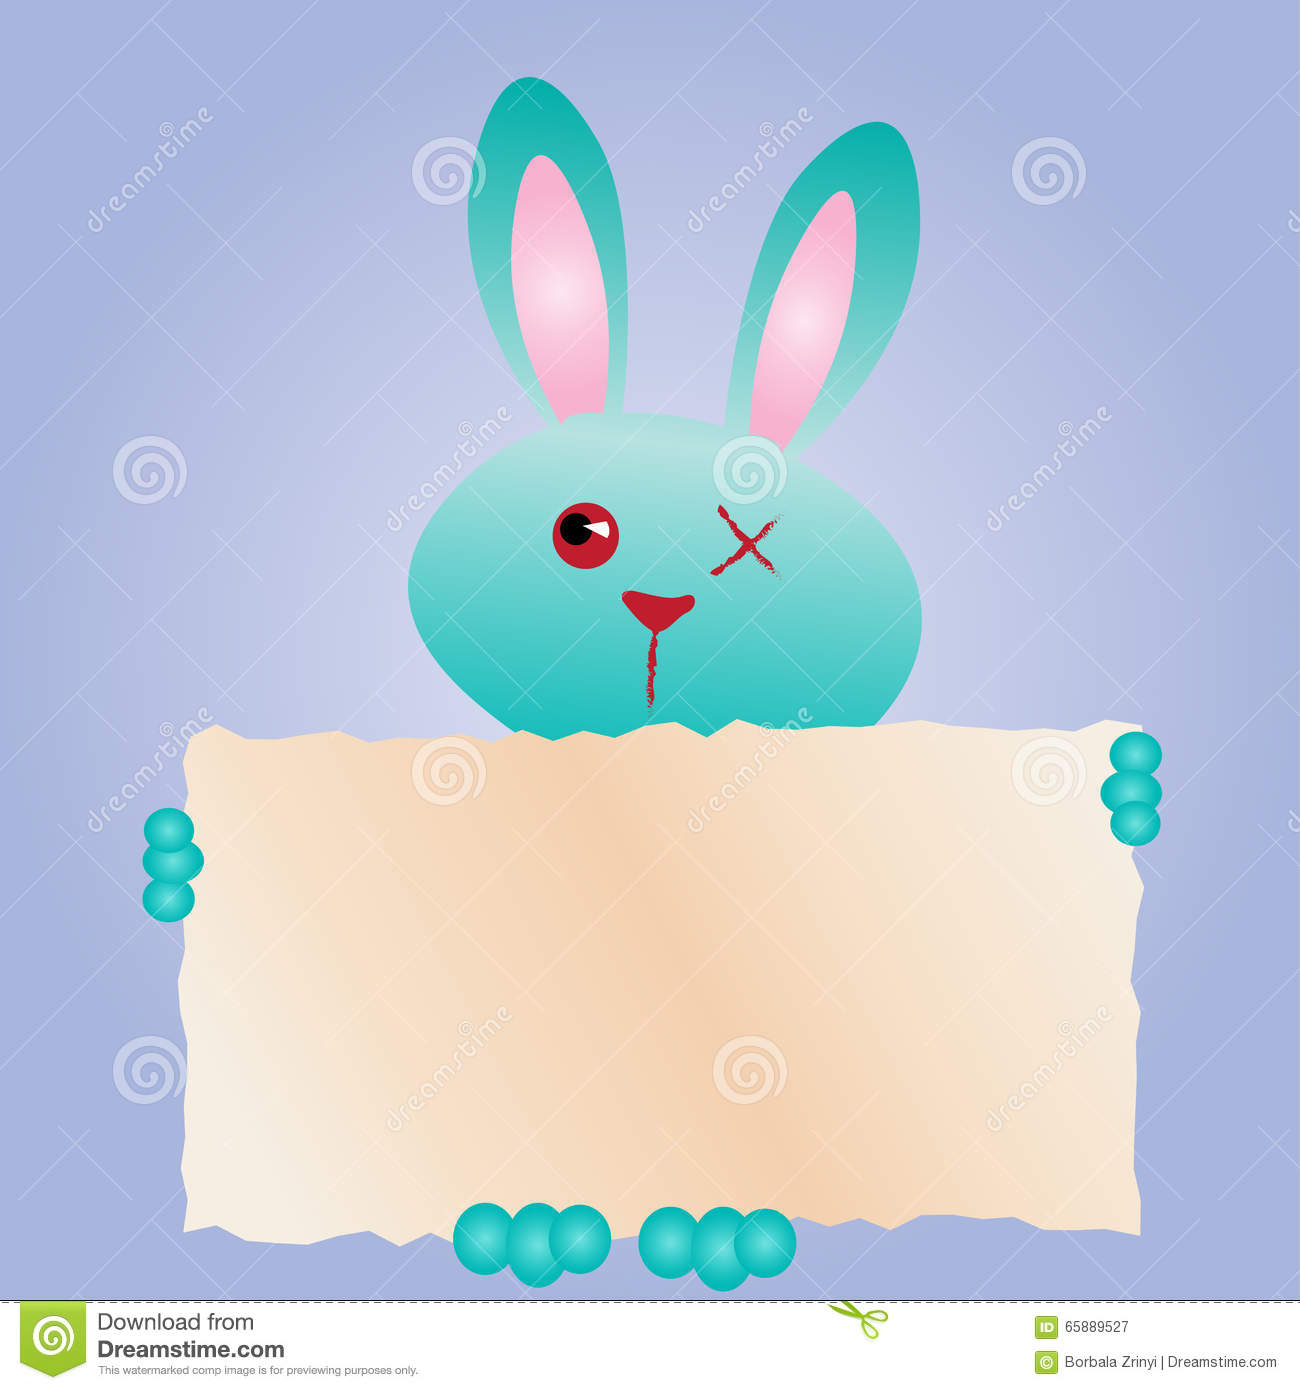 Happy easter greeting card funny bunny rabbit with text box happy easter greeting card funny bunny rabbit with text box kristyandbryce Choice Image